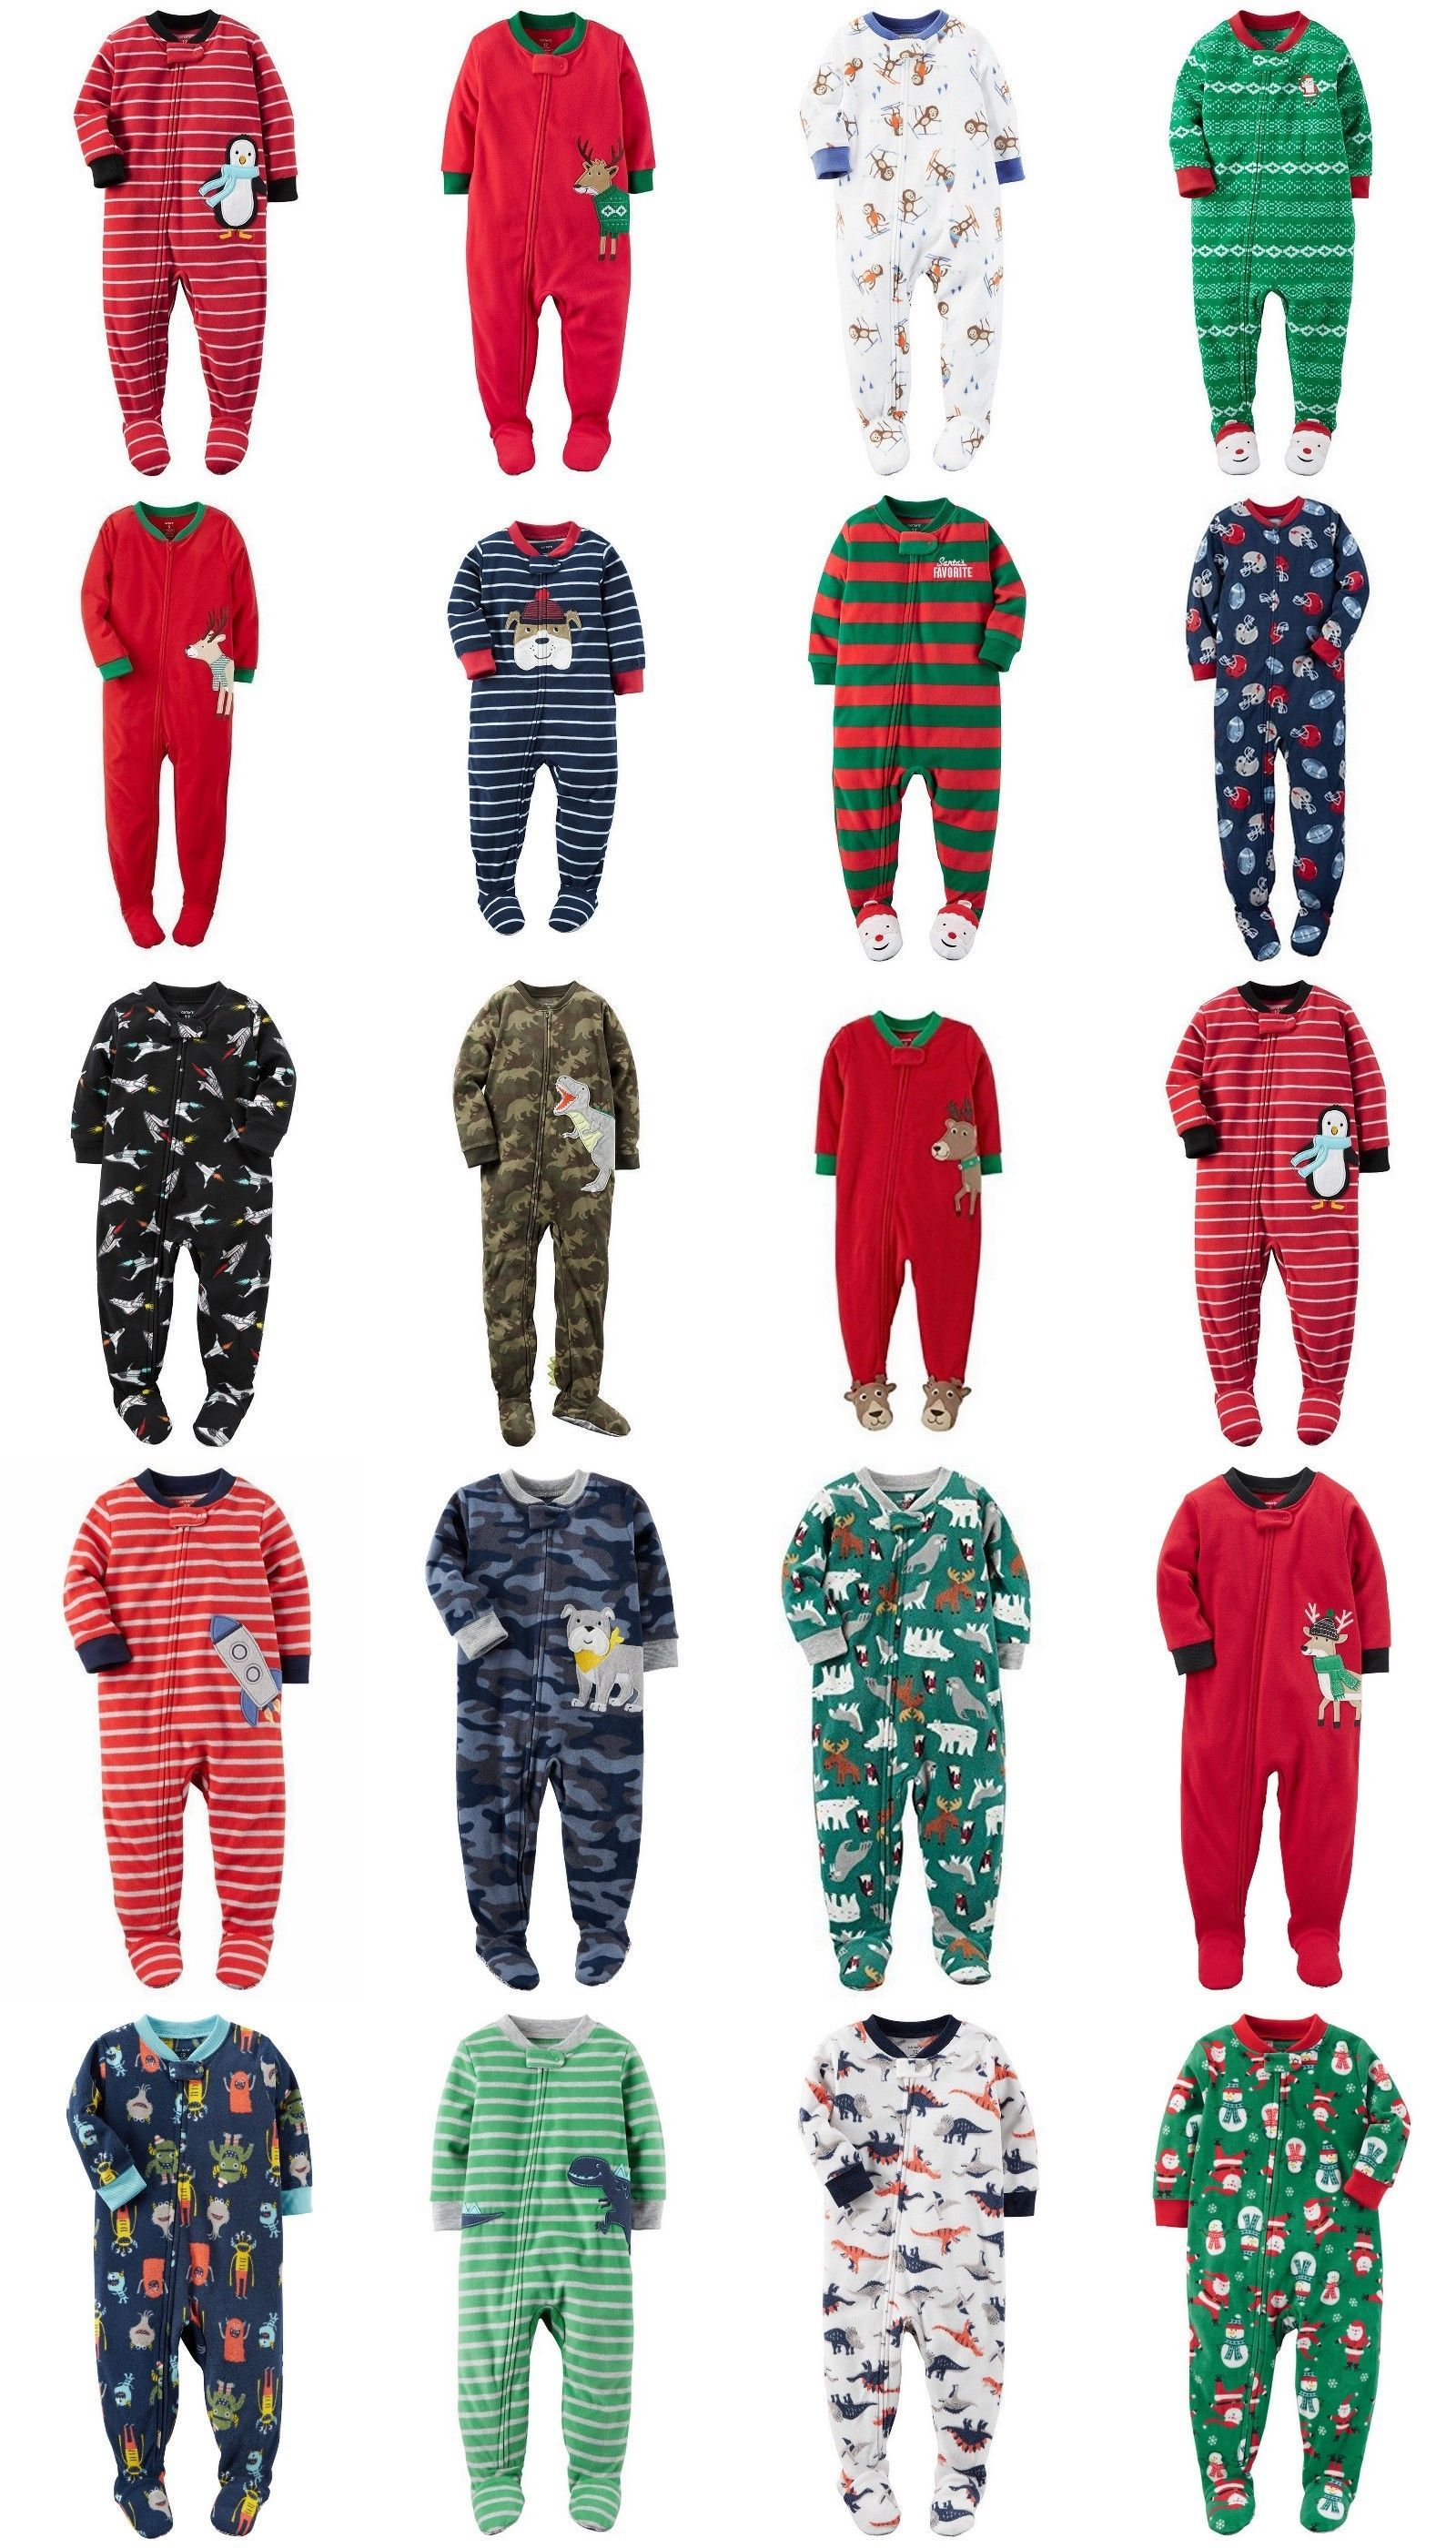 8e75a5265529 Sleepwear 147336  Carters Nwt 6 12 18 24 Month 2T 3T 4T 5T Footed ...